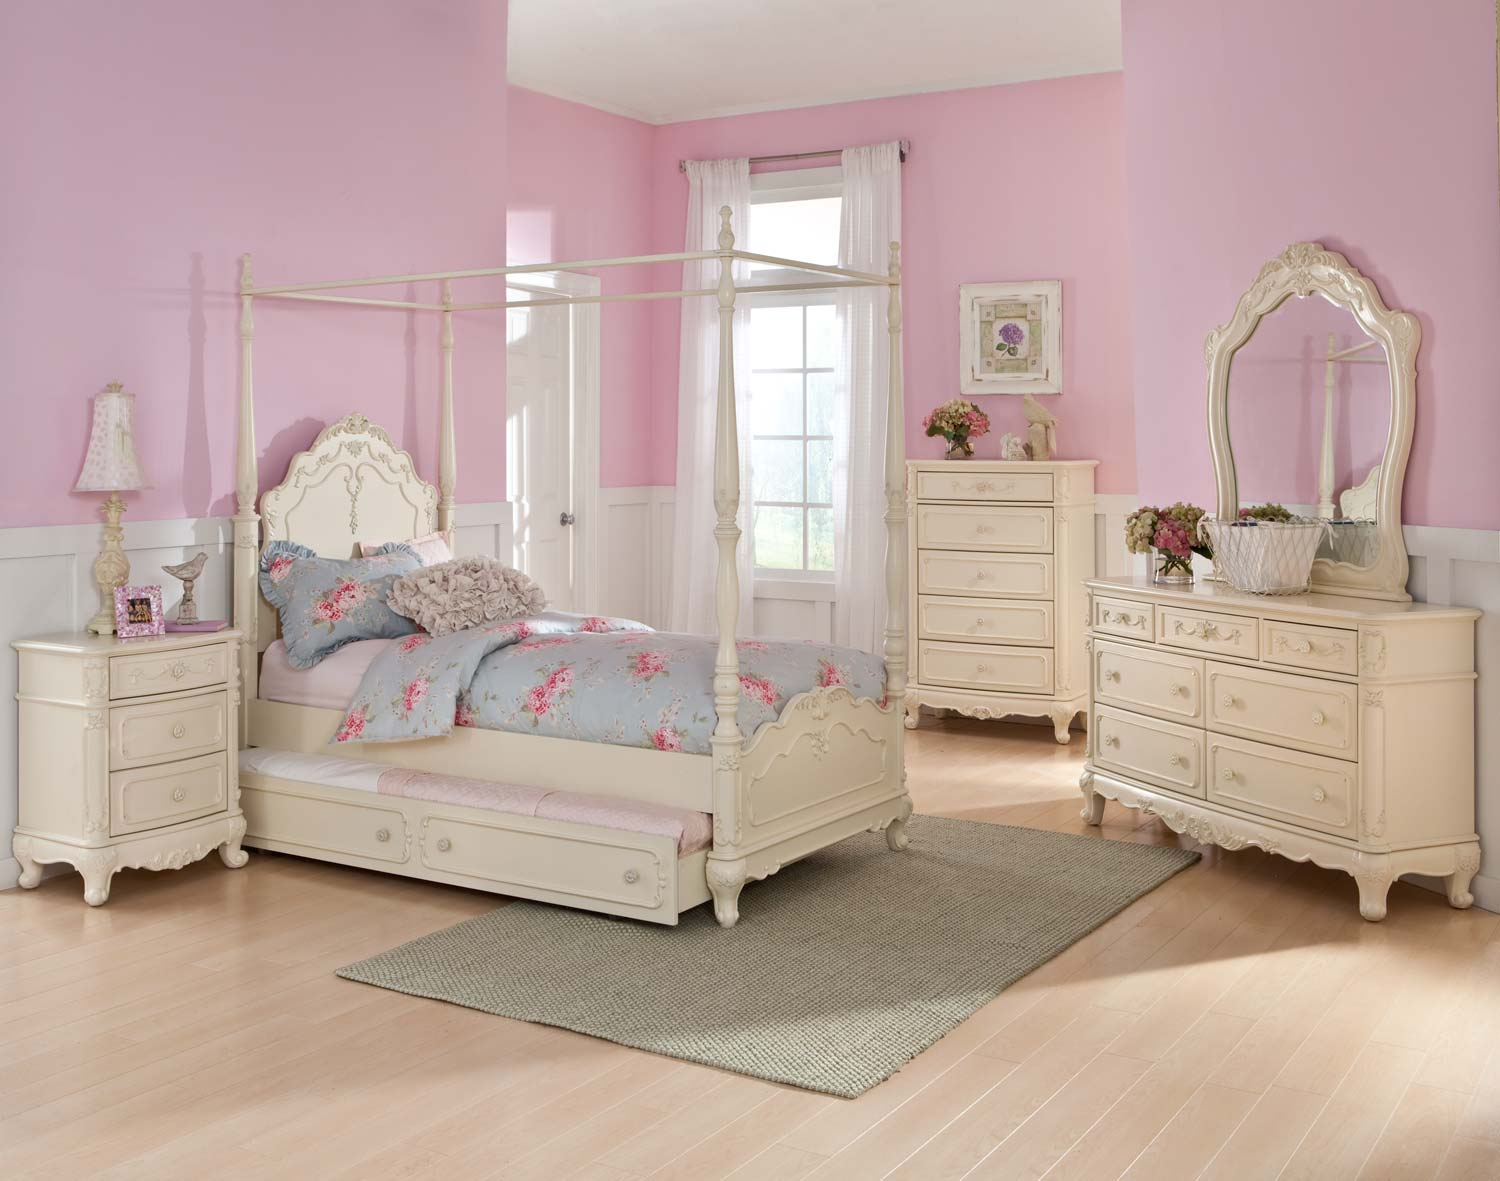 Homelegance cinderella full white 5pc canopy bedroom set for White full bedroom set